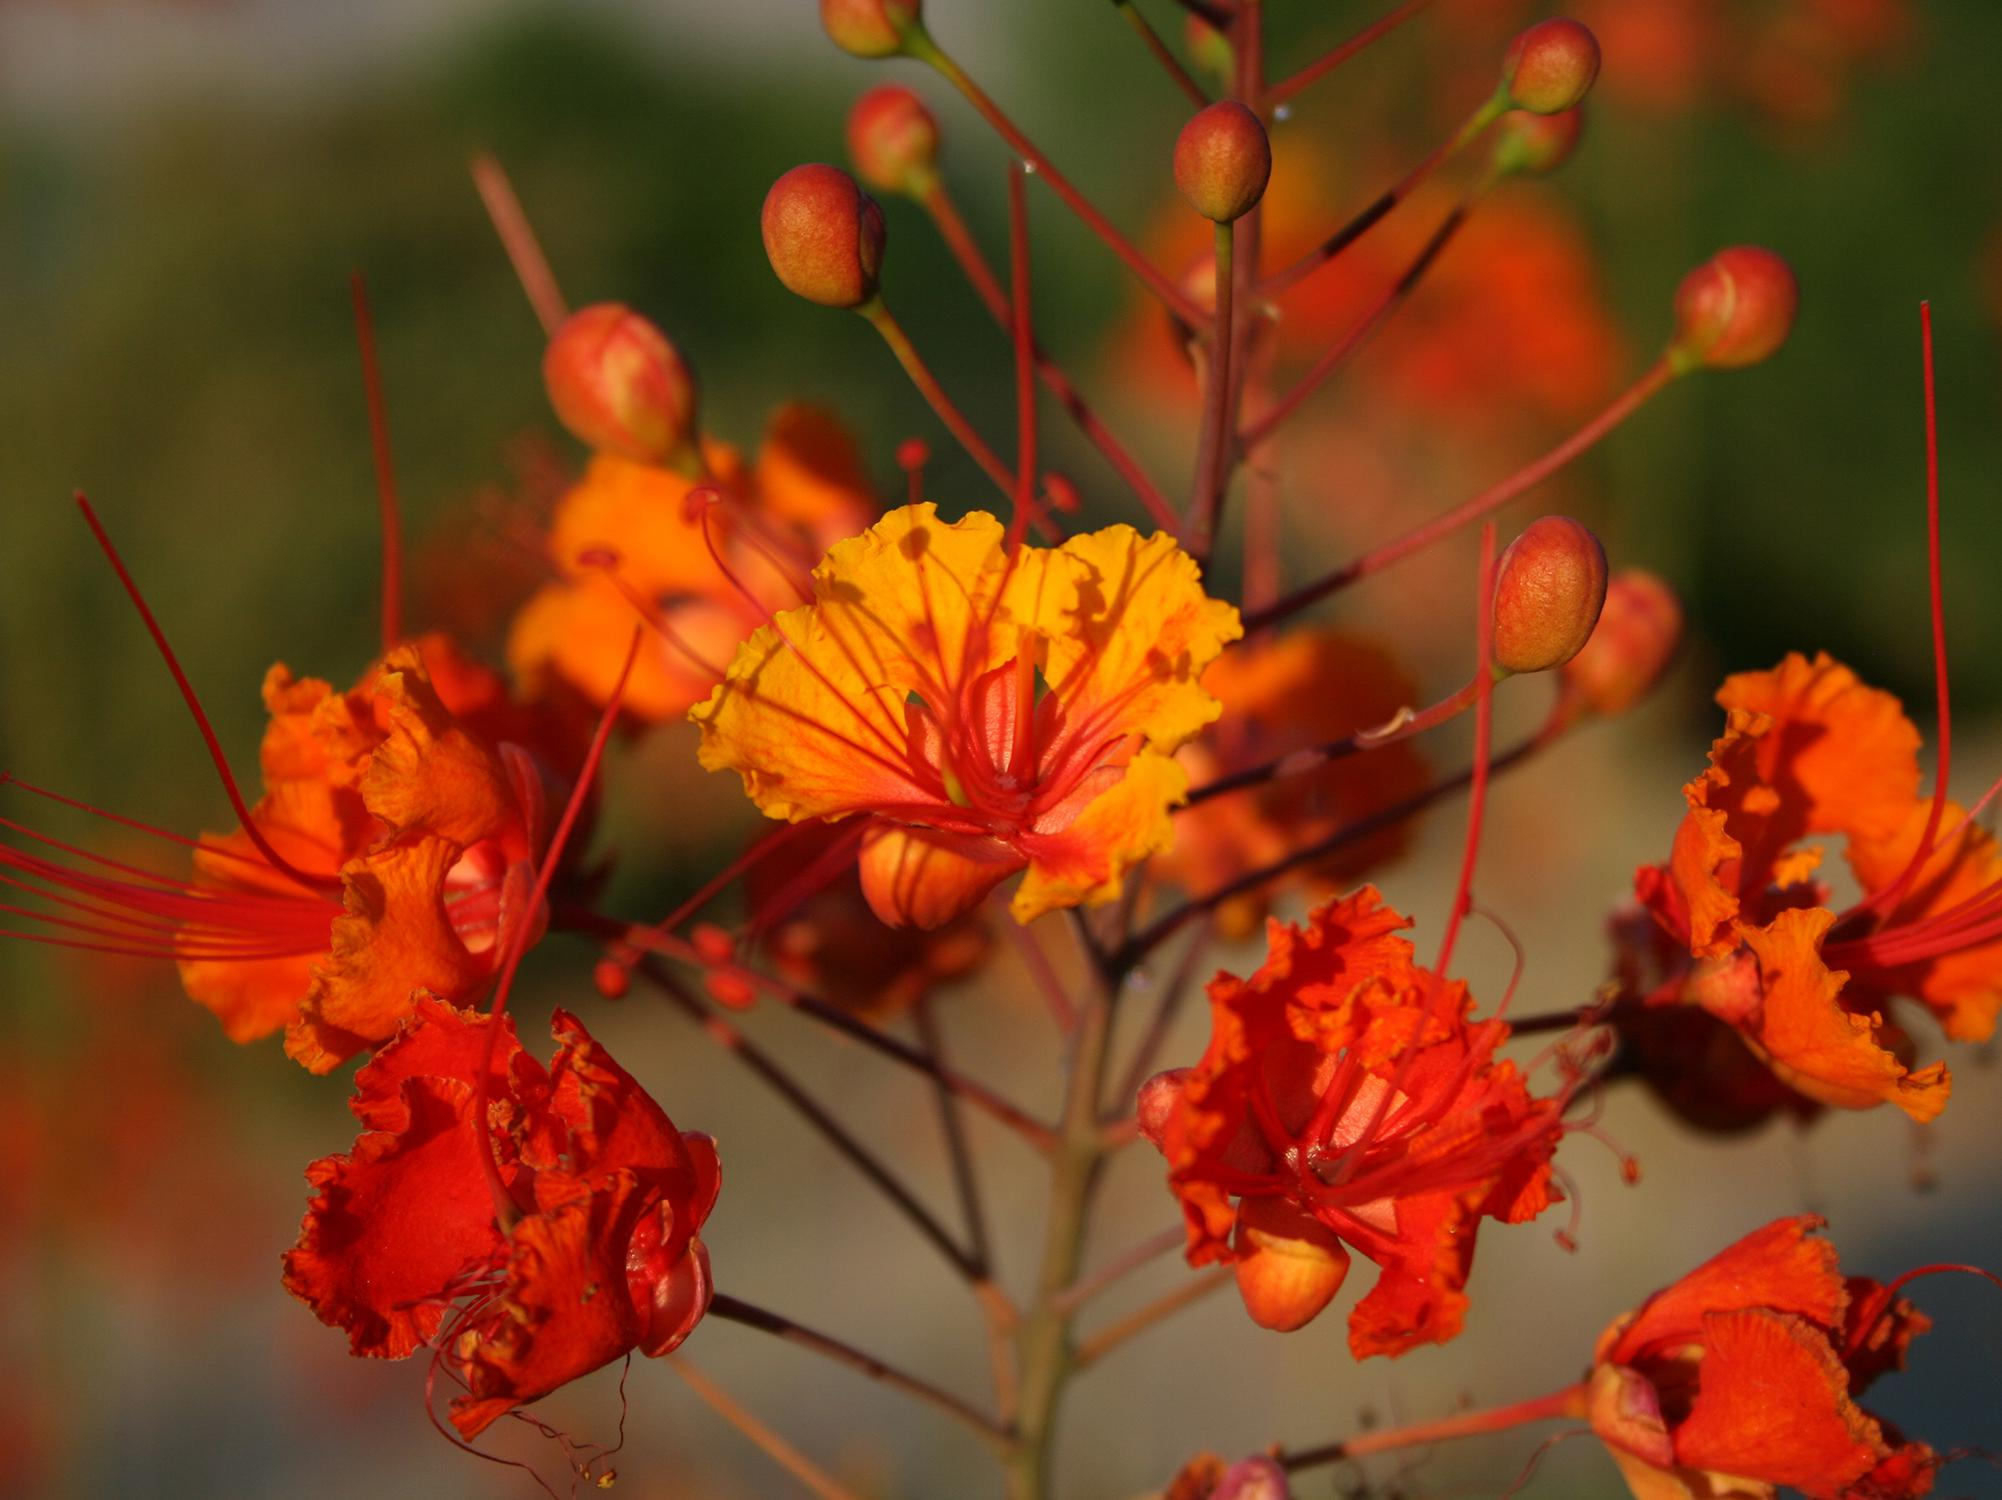 A cluster of orange flowers with red stamens.